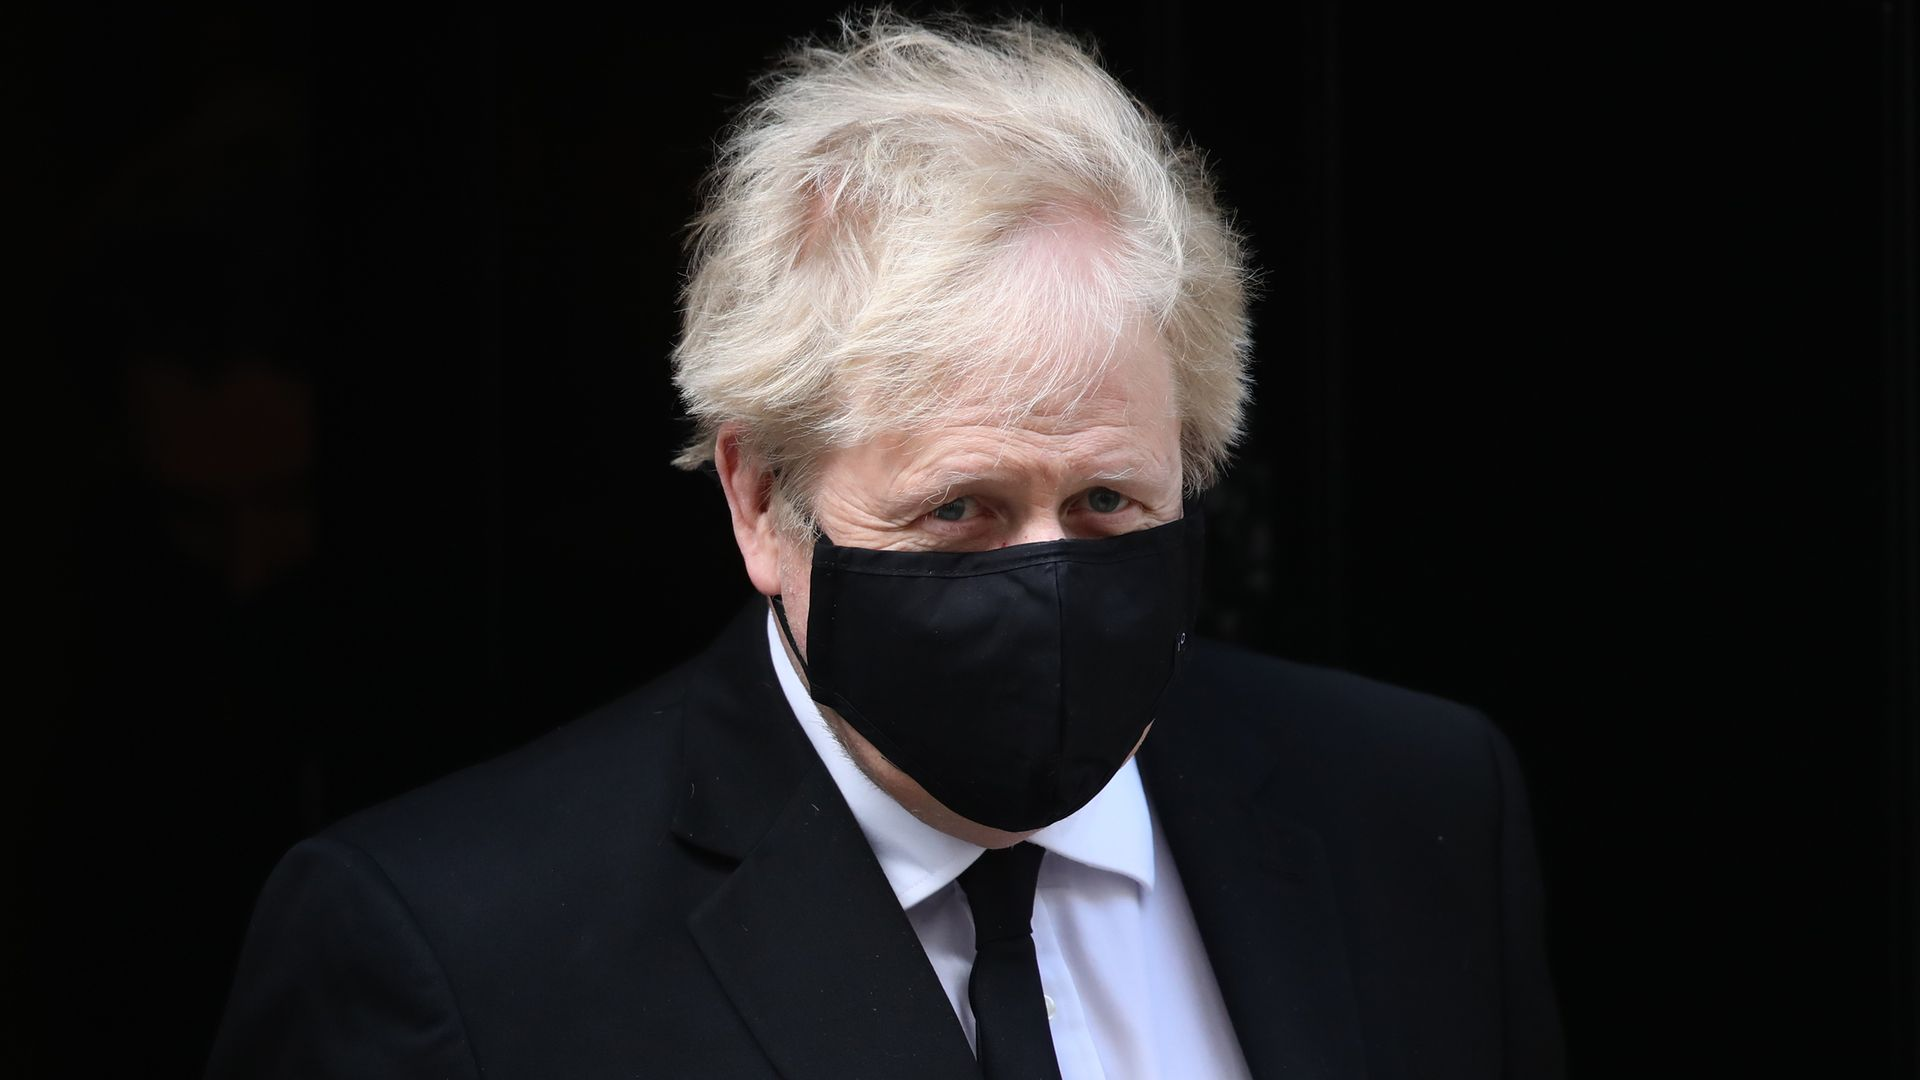 Downing Street has confirmed that prime minister Boris Johnson will no longer travel to India later this month for an official visit